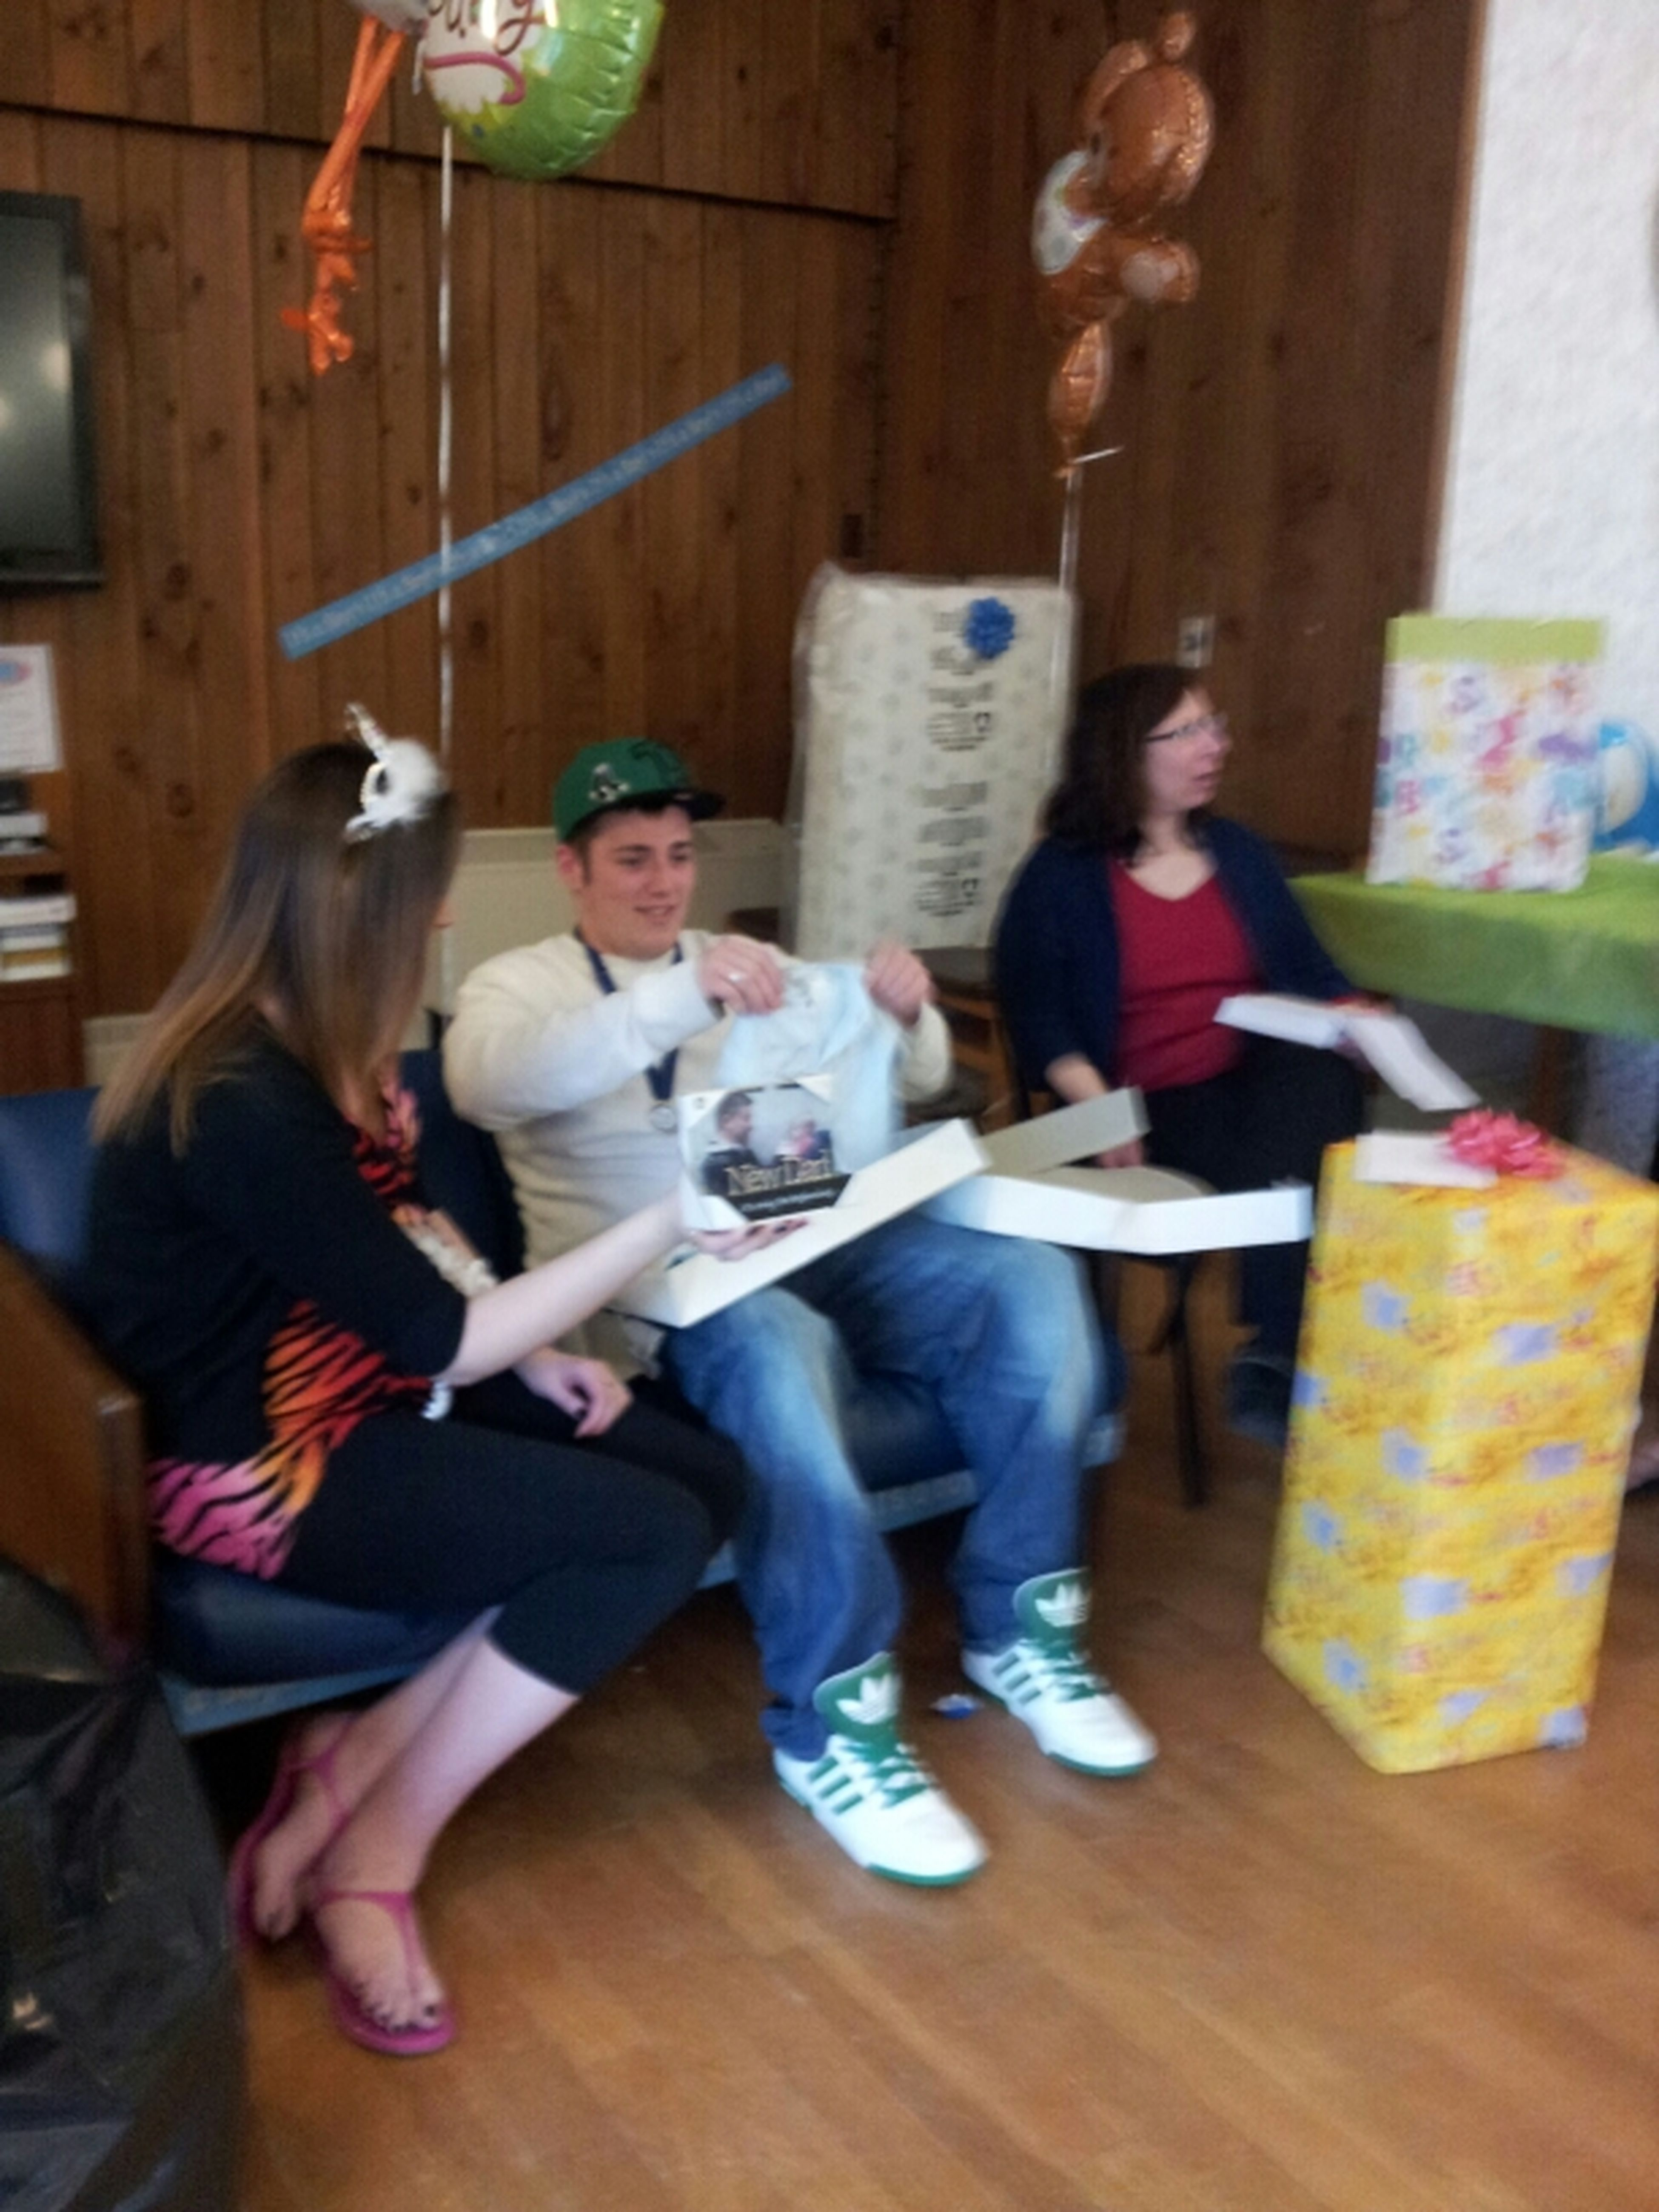 My Son Chris & Kendall Opening Gifts At Babyshower